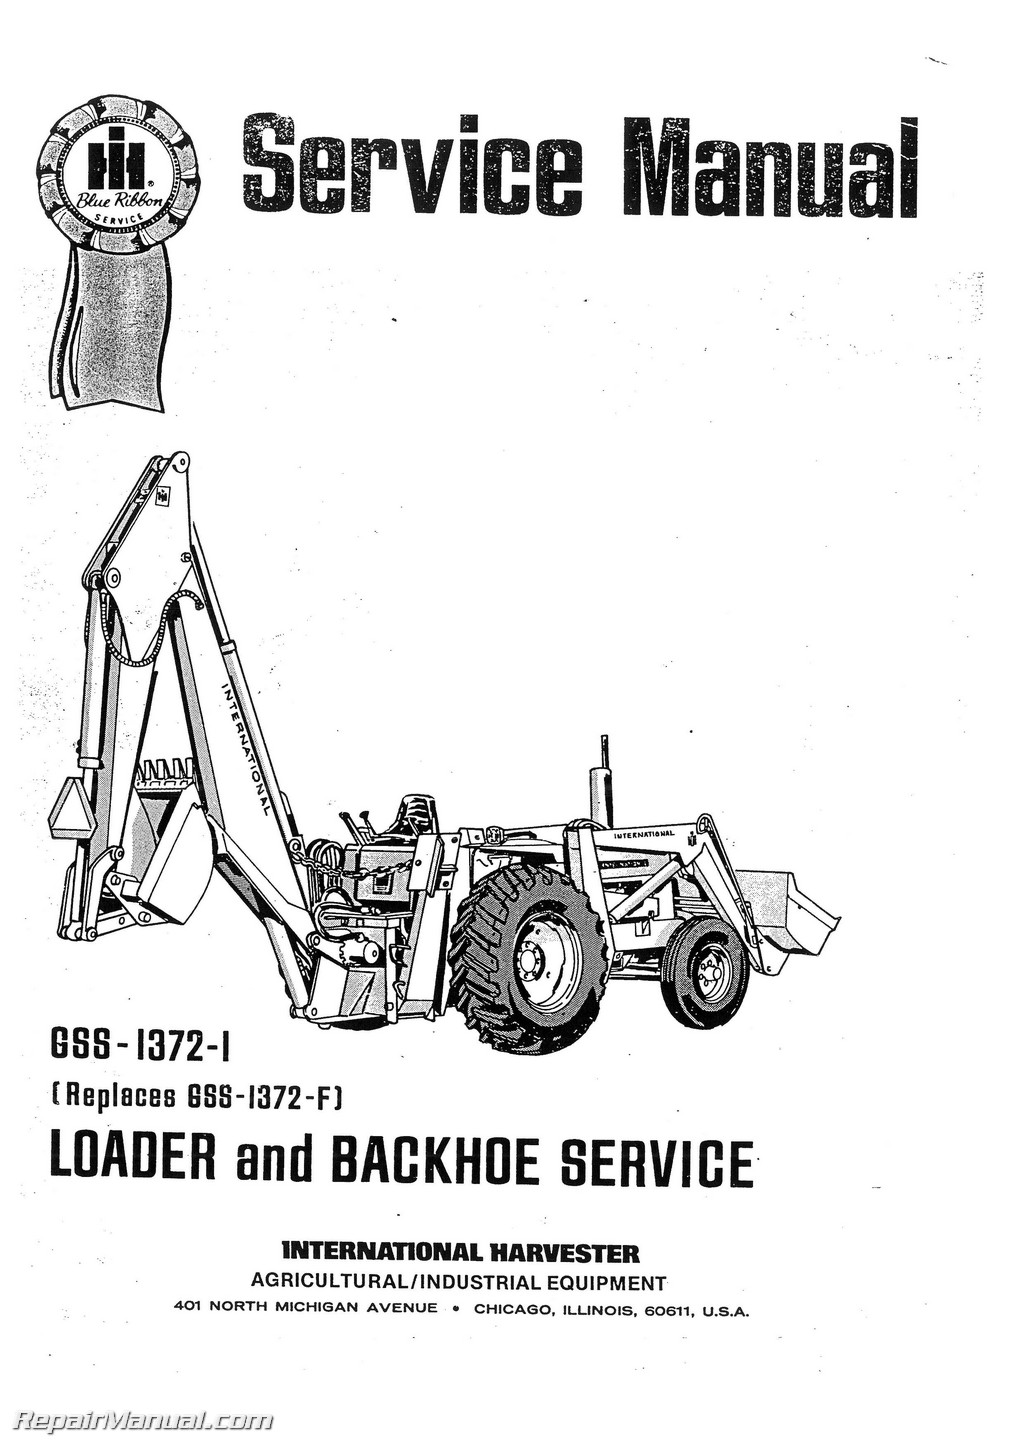 International Harvester 3444 Tractor Loader Backhoe Service Manual Cub Cadet Engine Schematics